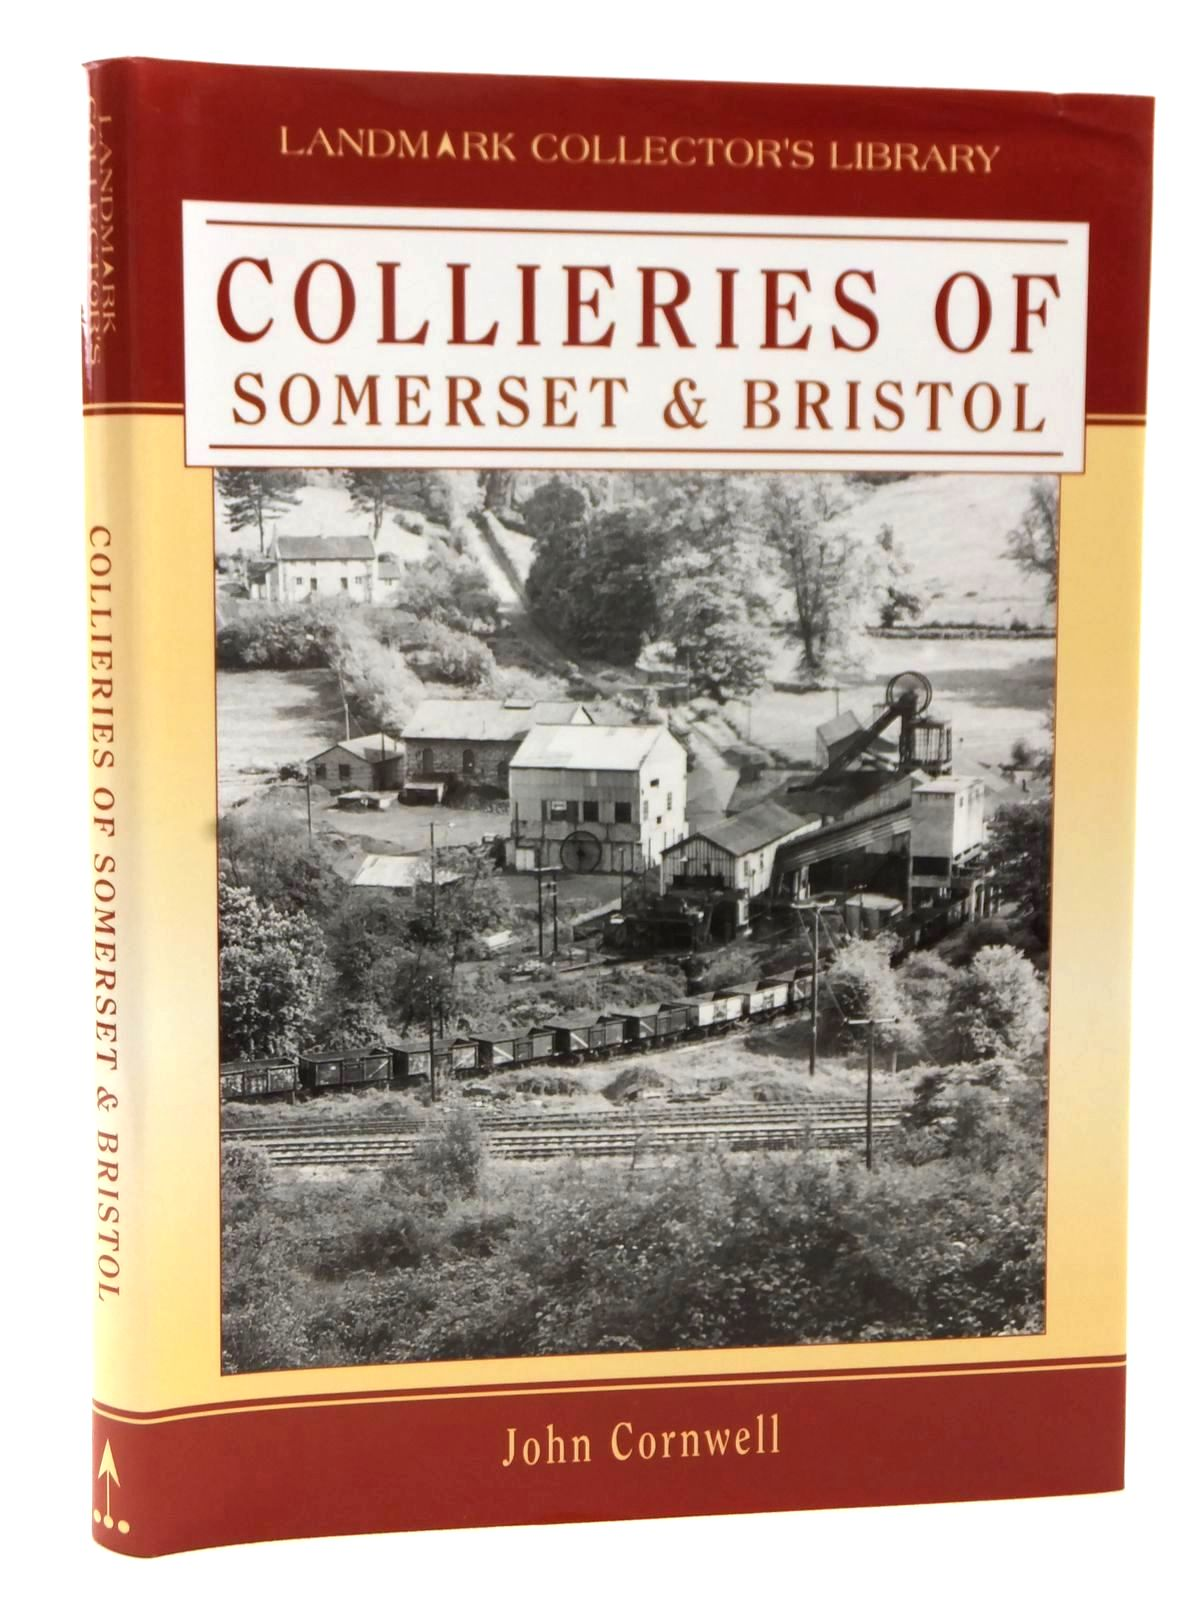 Photo of COLLIERIES OF SOMERSET & BRISTOL written by Cornwell, John published by Landmark Publishing (STOCK CODE: 1609087)  for sale by Stella & Rose's Books